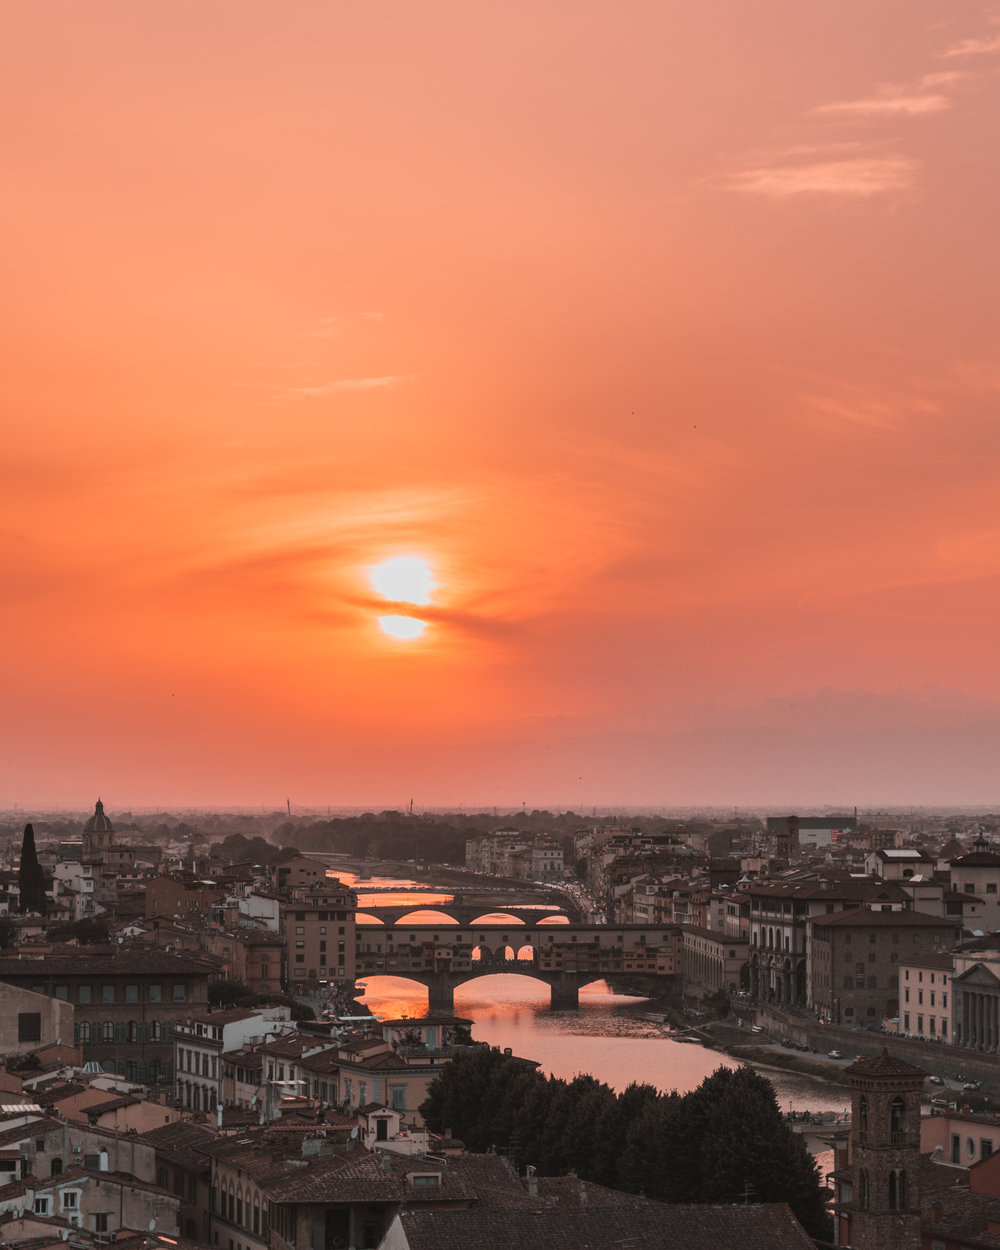 best sunset photos places instagram travel couple beautiful interrail europe city views freeoversea florence